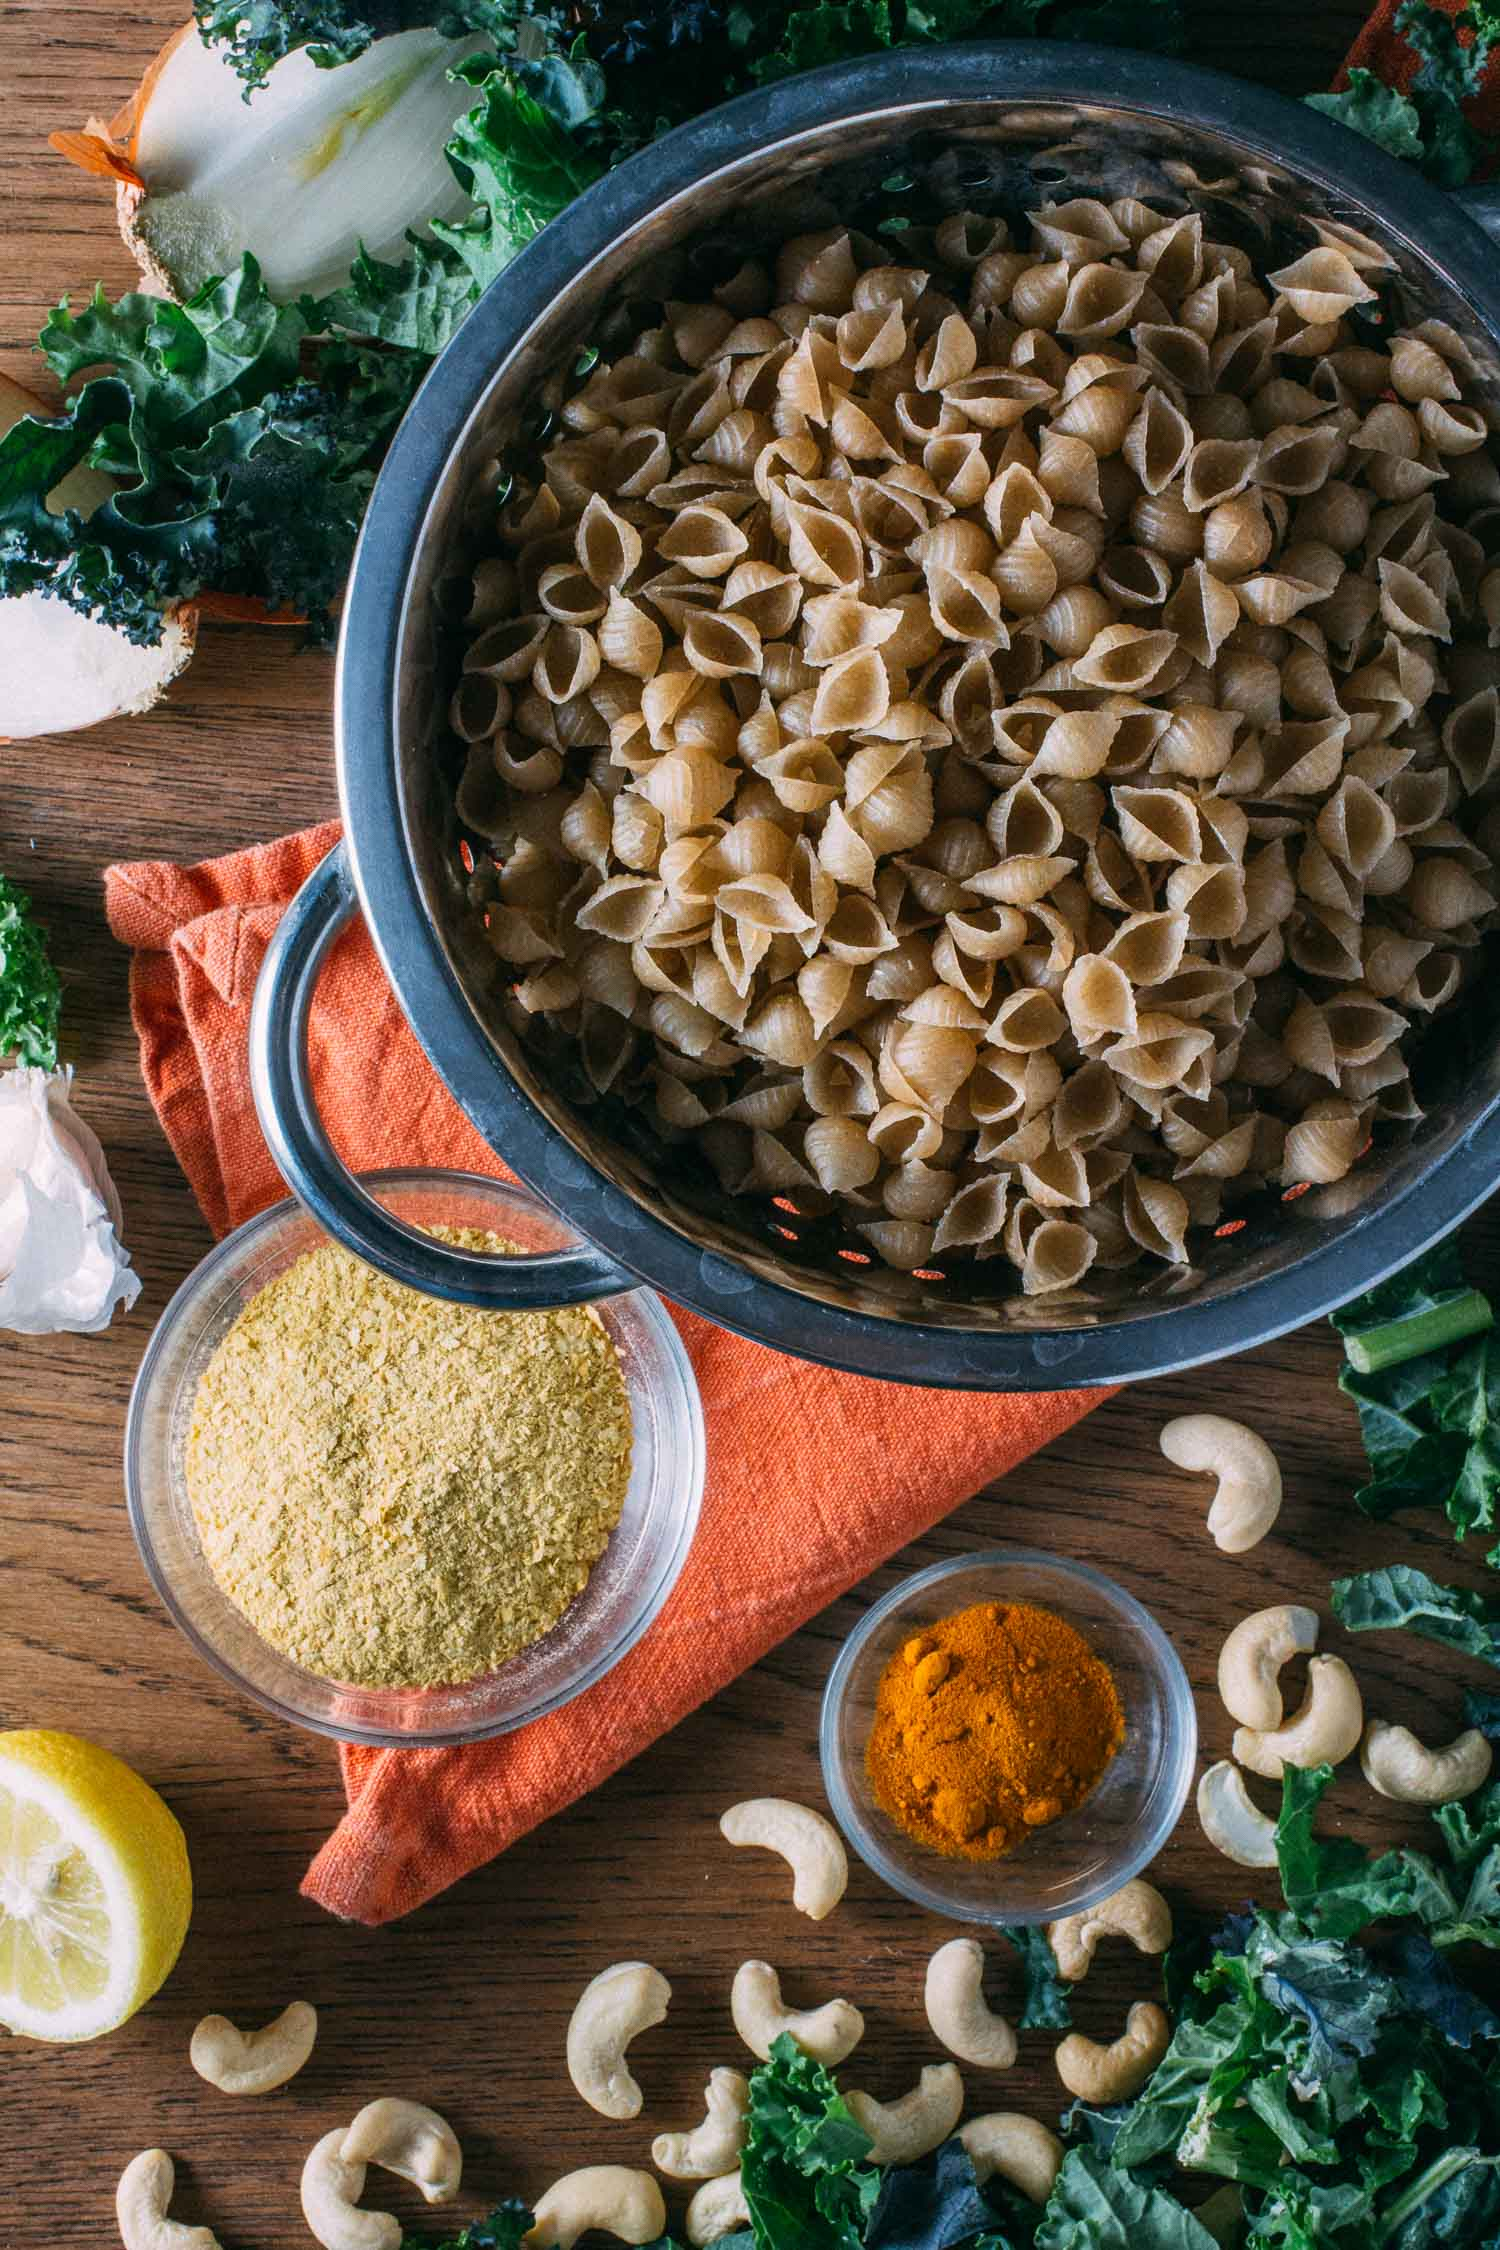 Oil-Free Vegan Kale Mac & Cheese #kale #protein #meatlessmonday #meatless